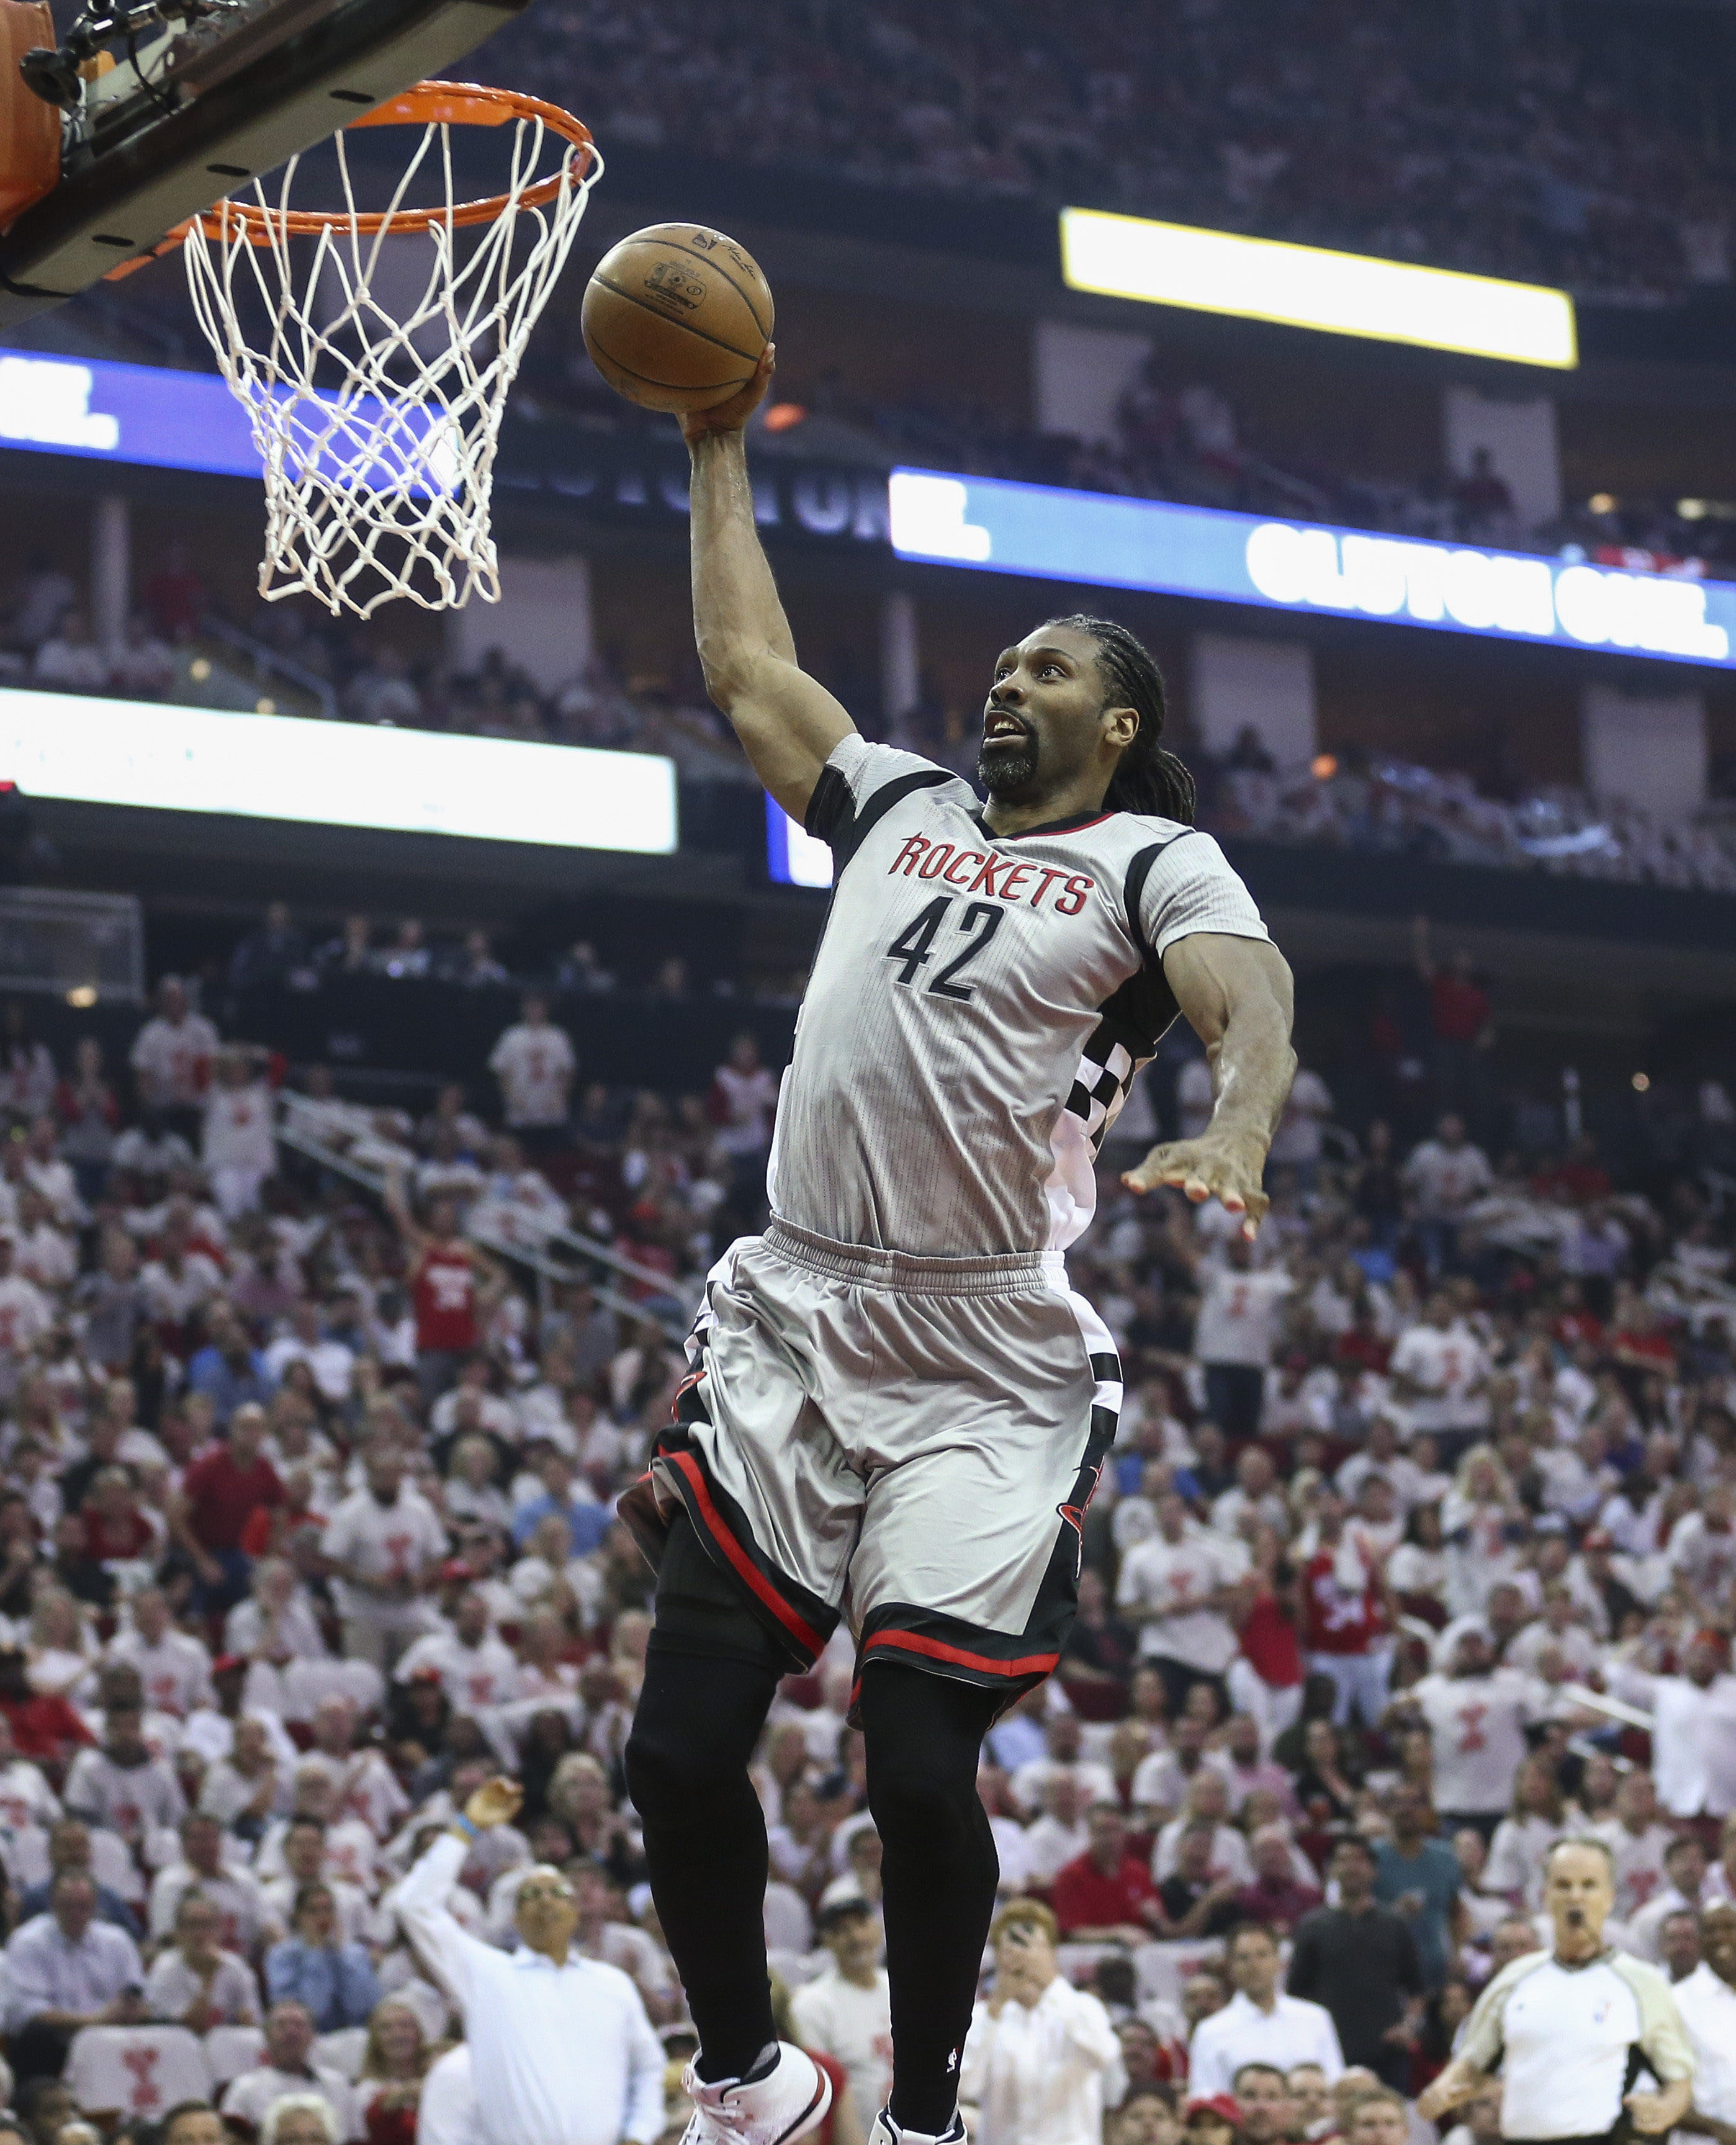 Ho houston rockets nba championship - Rocket Fuel June 12 2017 Your One Stop Shop For Houston Rockets Local Sports And News From Around The League For Monday June 12 2017